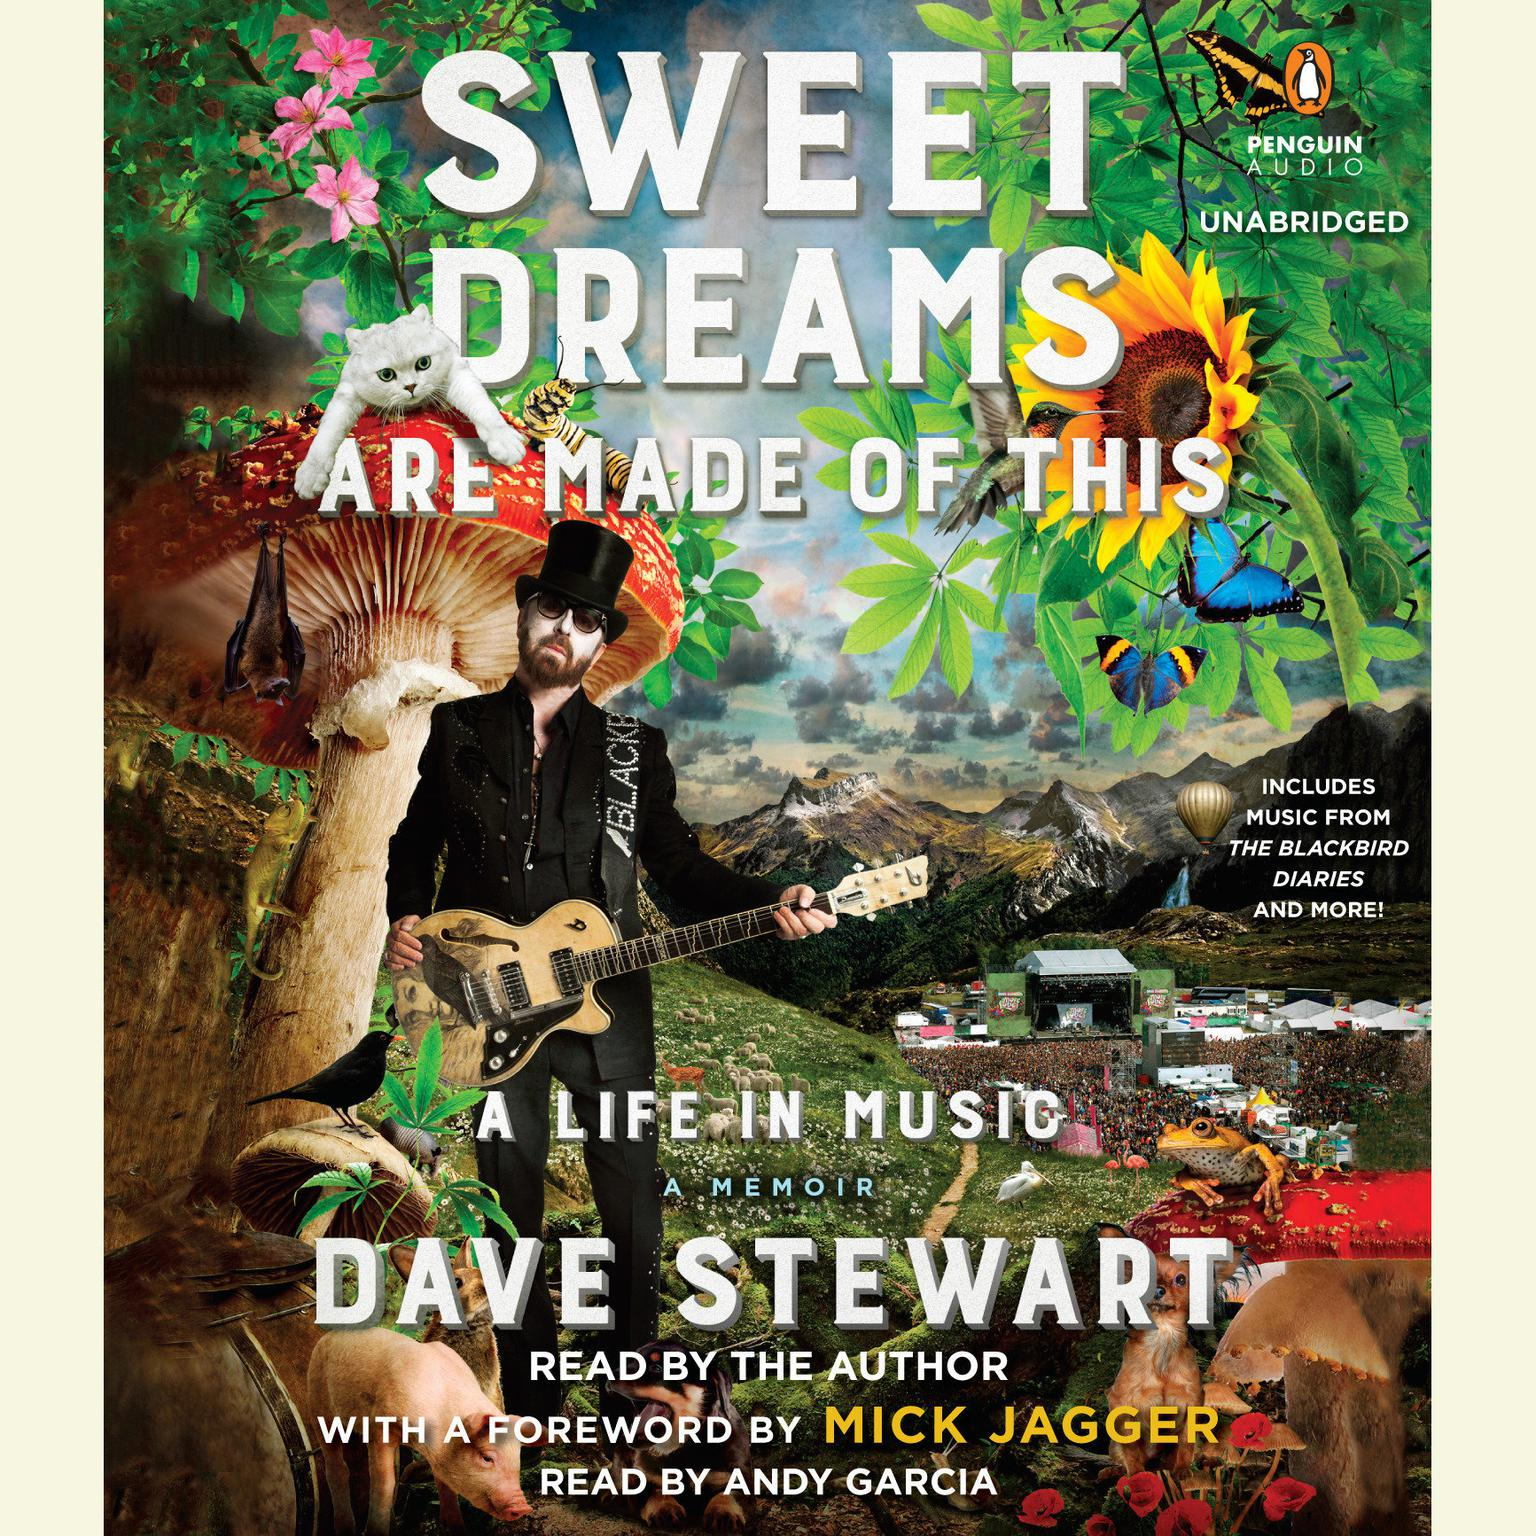 Printable Sweet Dreams Are Made of This: A Life In Music Audiobook Cover Art